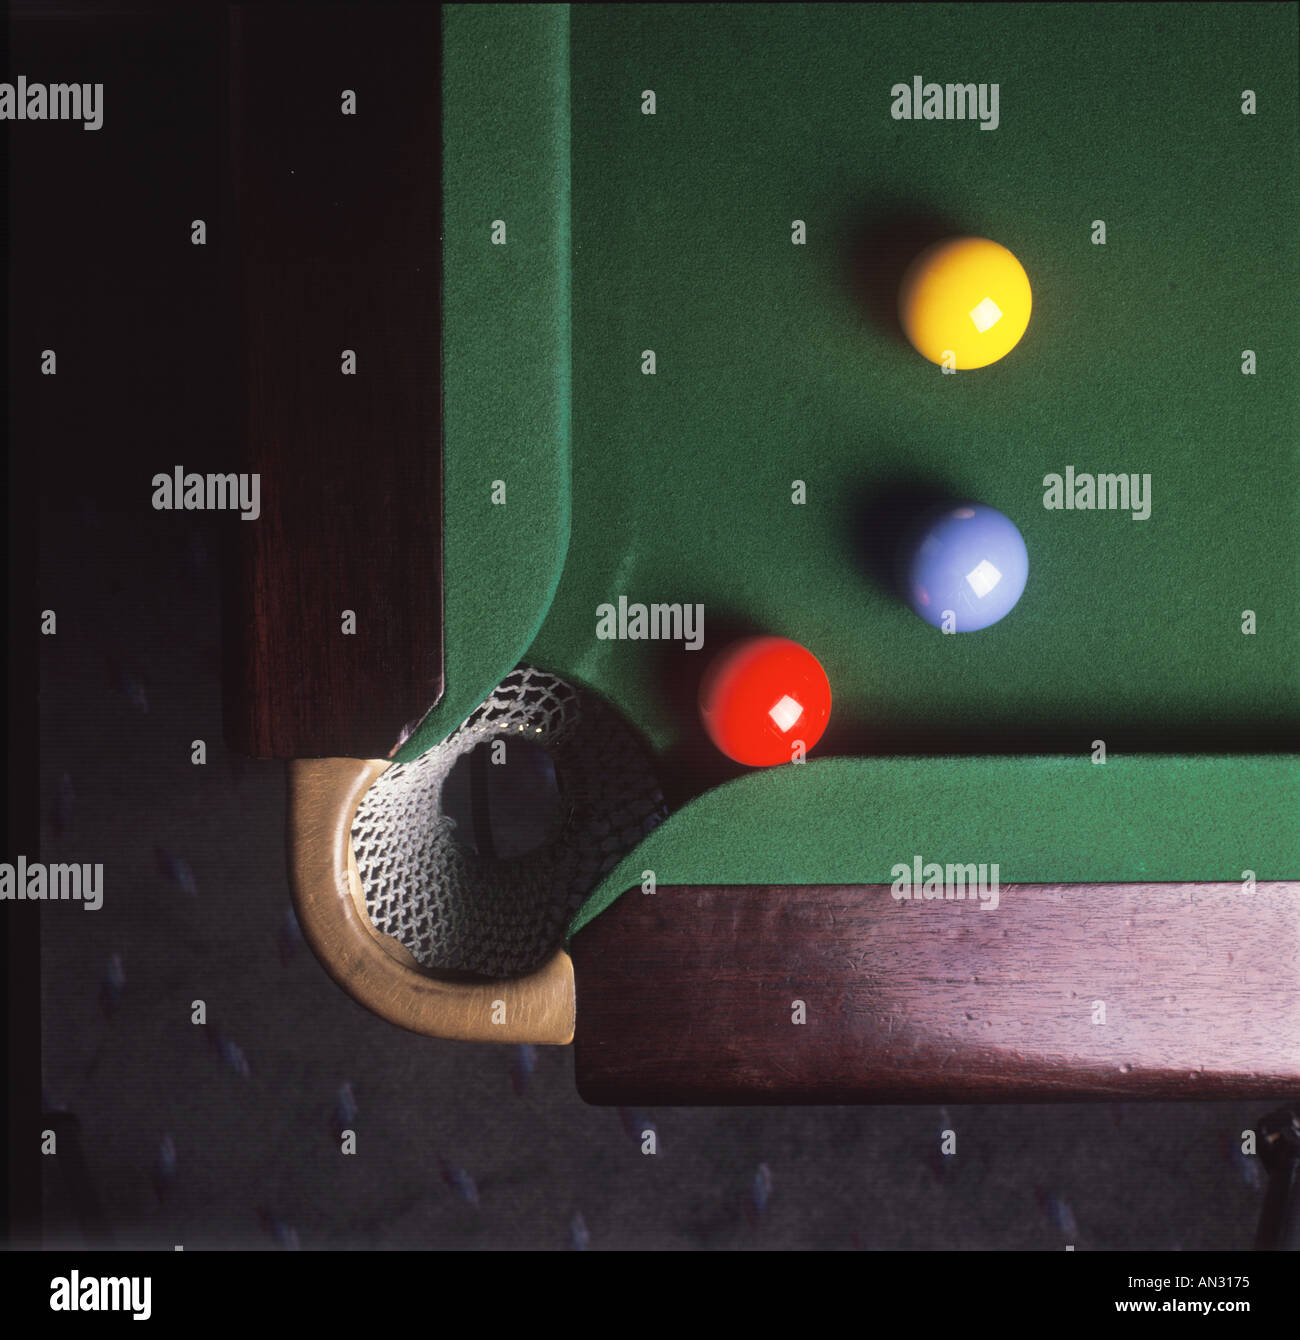 Billiards Pool Table, Close Up Detail Aerial View - Stock Image